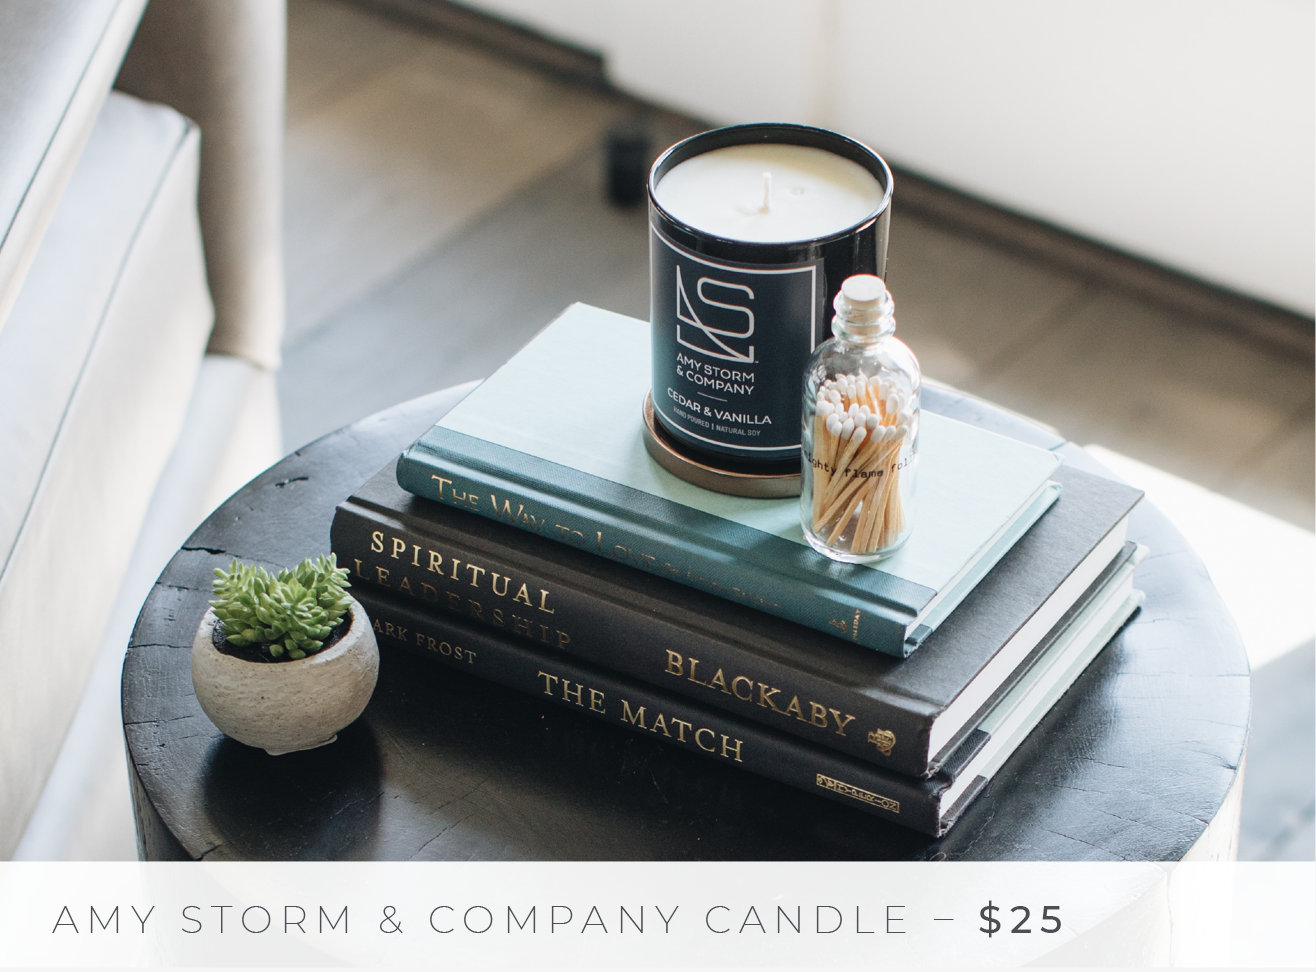 Shop The Look: Group Effort/The Living Room - Candles